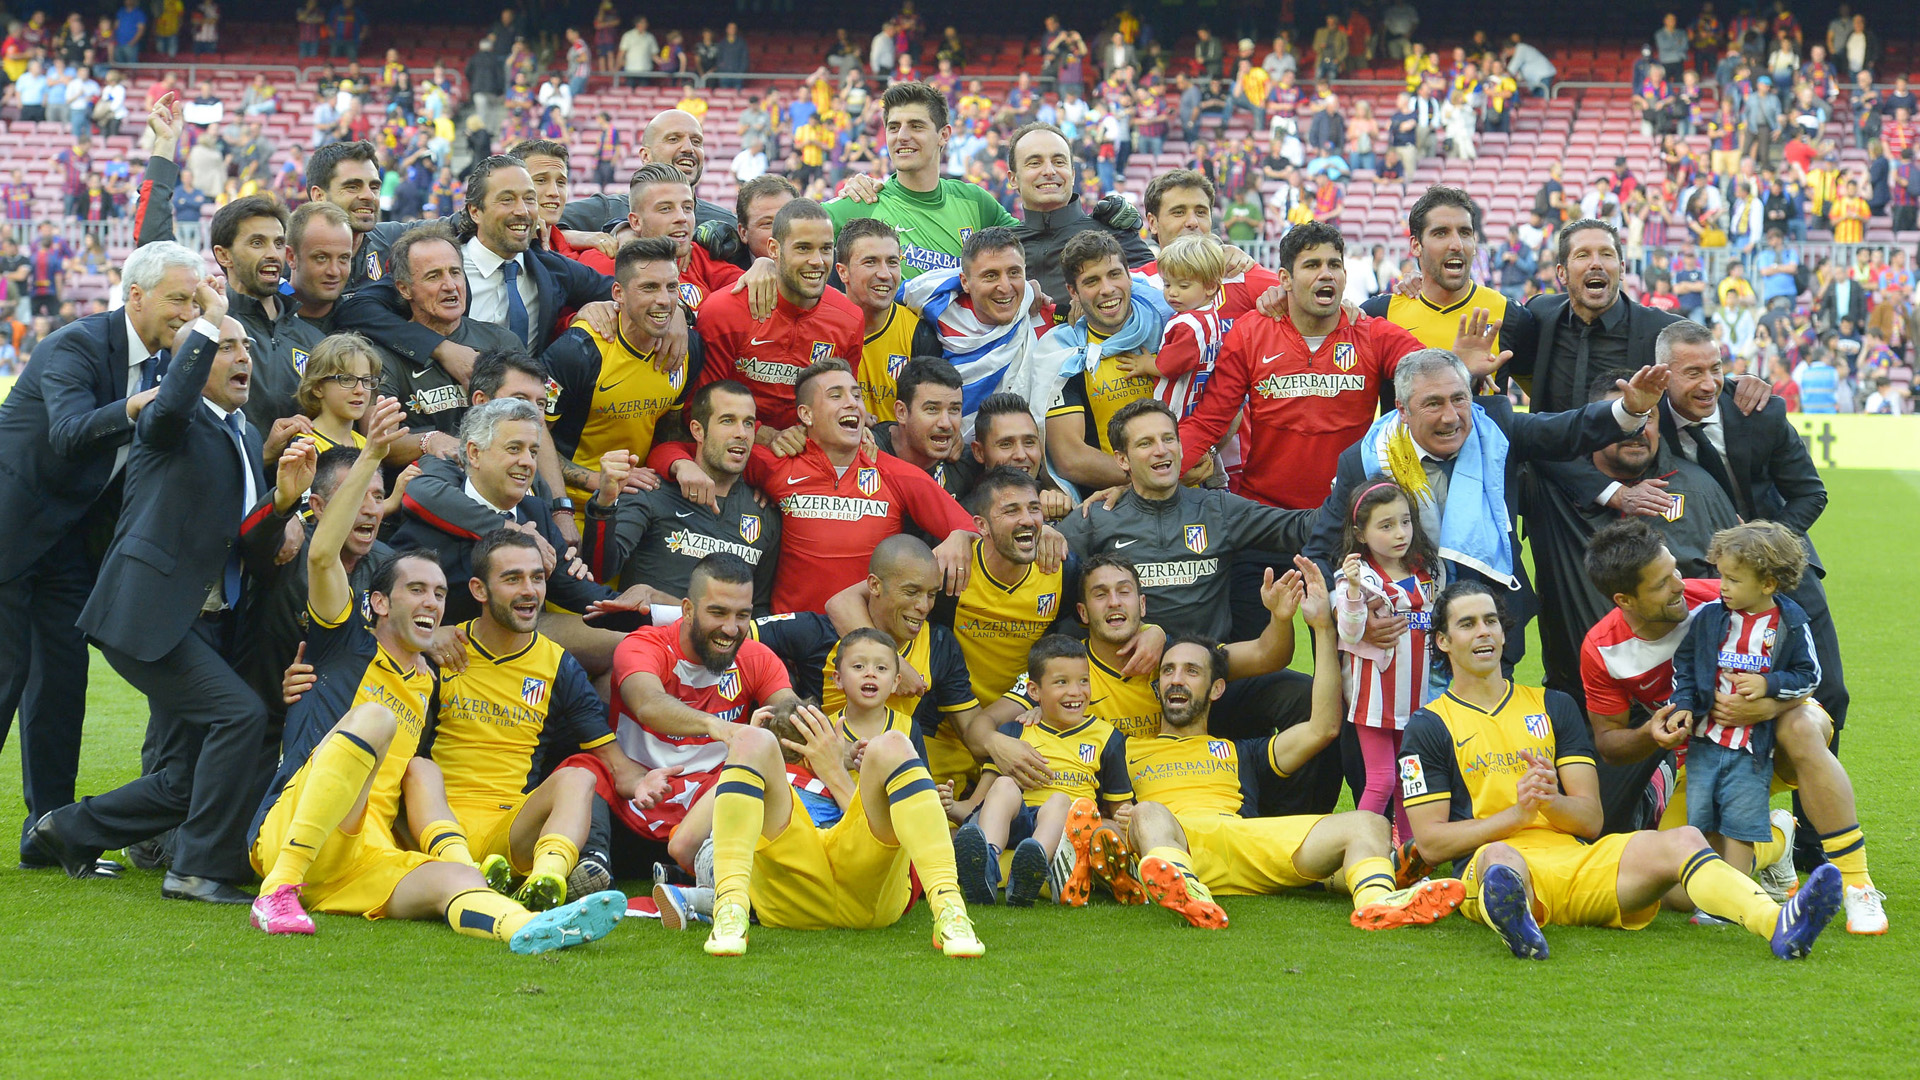 atletico-madrid-FTR-051714.jpg